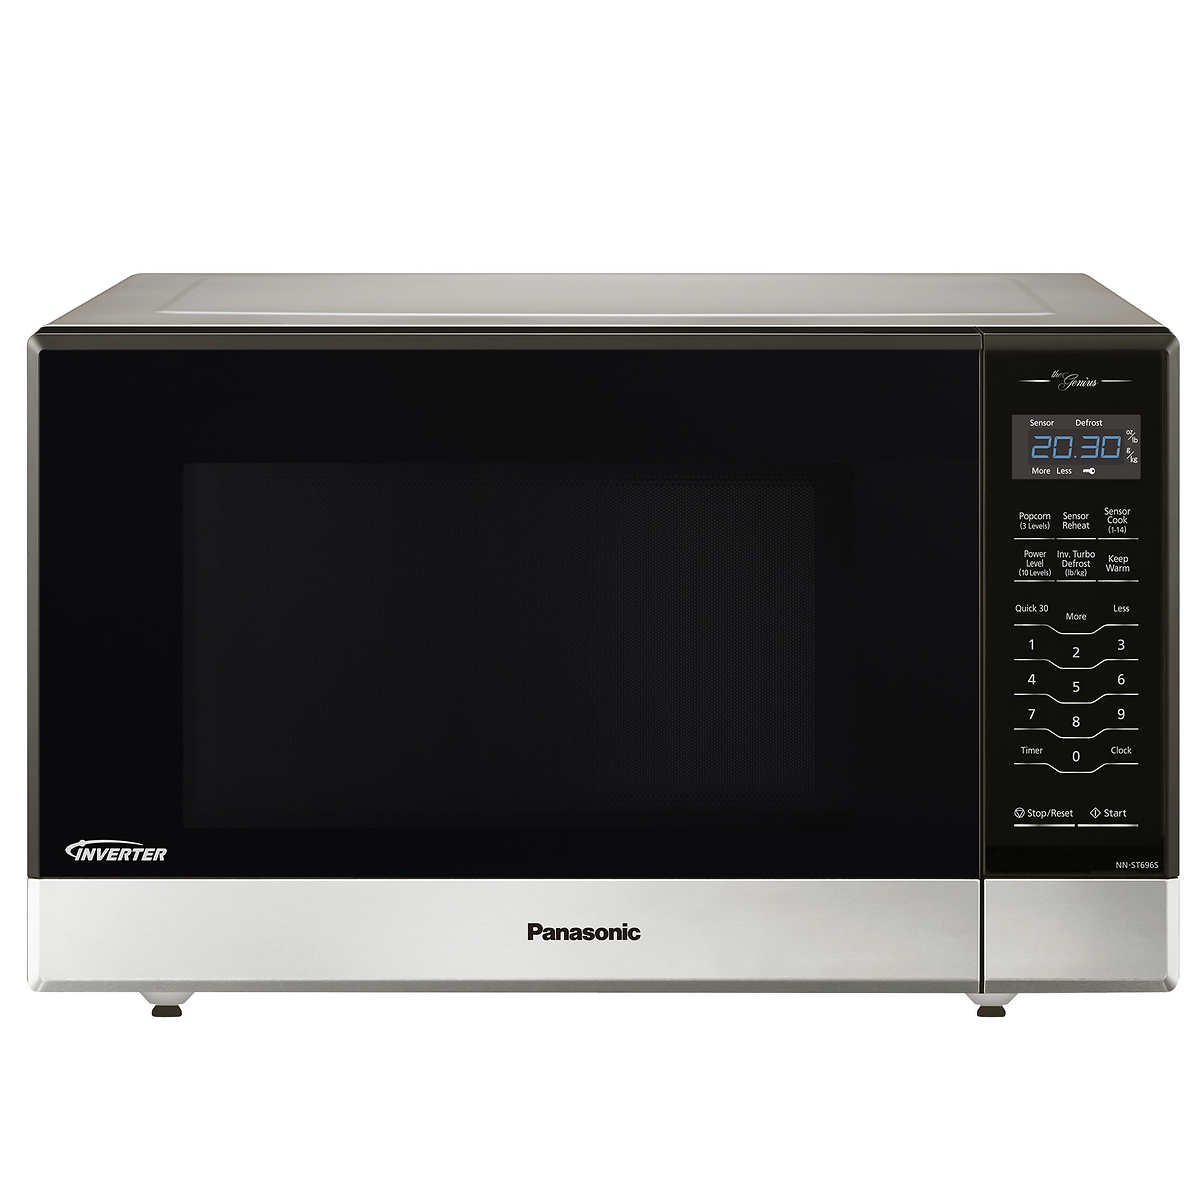 Panasonic NN-ST696S Countertop/Built-In Microwave with Inverter Technology, 1.2 cu. ft. , Stainless (Renewed) by Panasonic